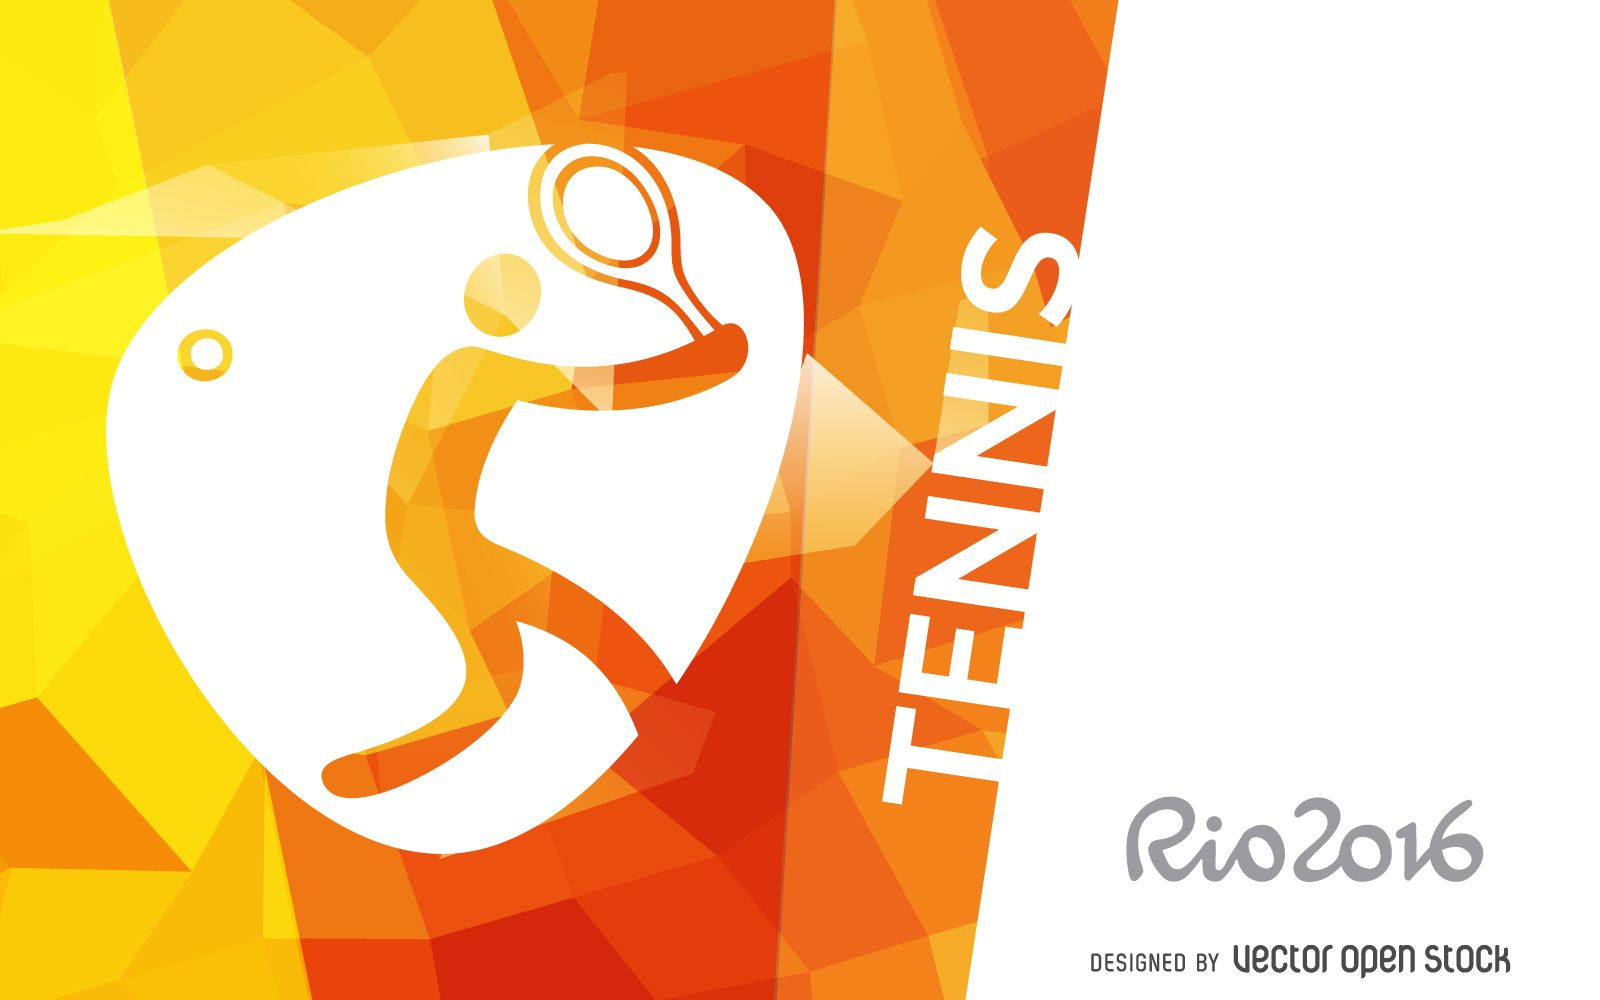 Olympic rings logo rio 2016 olympics logo designed by fred gelli - Rio 2016 Design Featuring The Official Tennis Pictogram Design Also Includes Rio 2016 Logo At The Left Side And It Says Tennis In Big Capital Letters